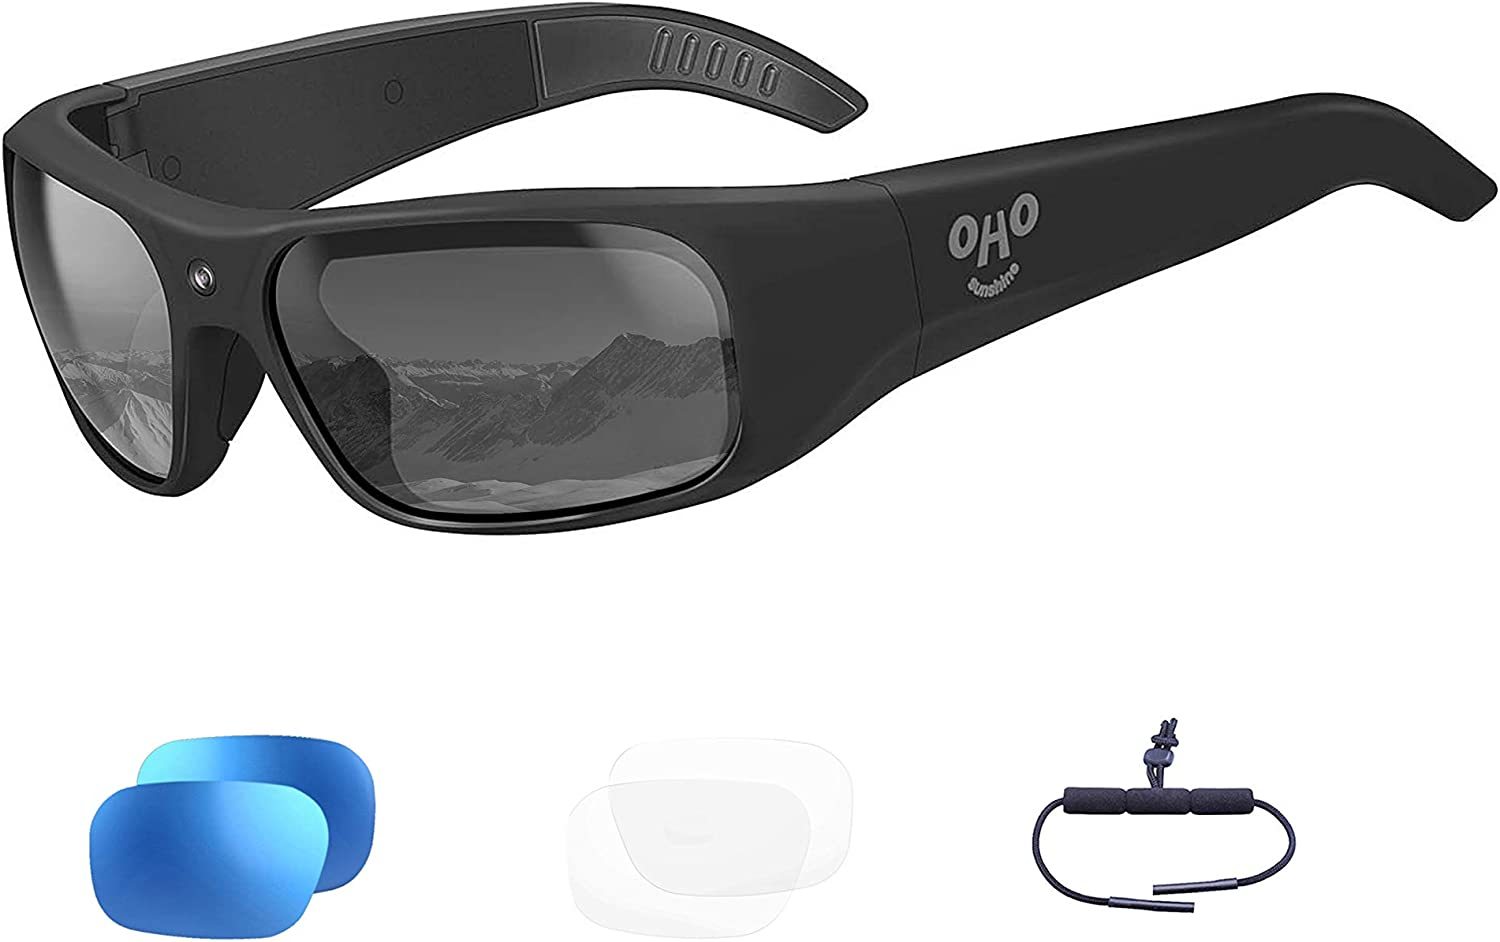 256GB WiFi Video Sunglasses Live Streaming Videos /& Photos from Glasses to Mobile Phone by App with Ultra Full HD Camera and Polarized UV400 Protection Sunglasses